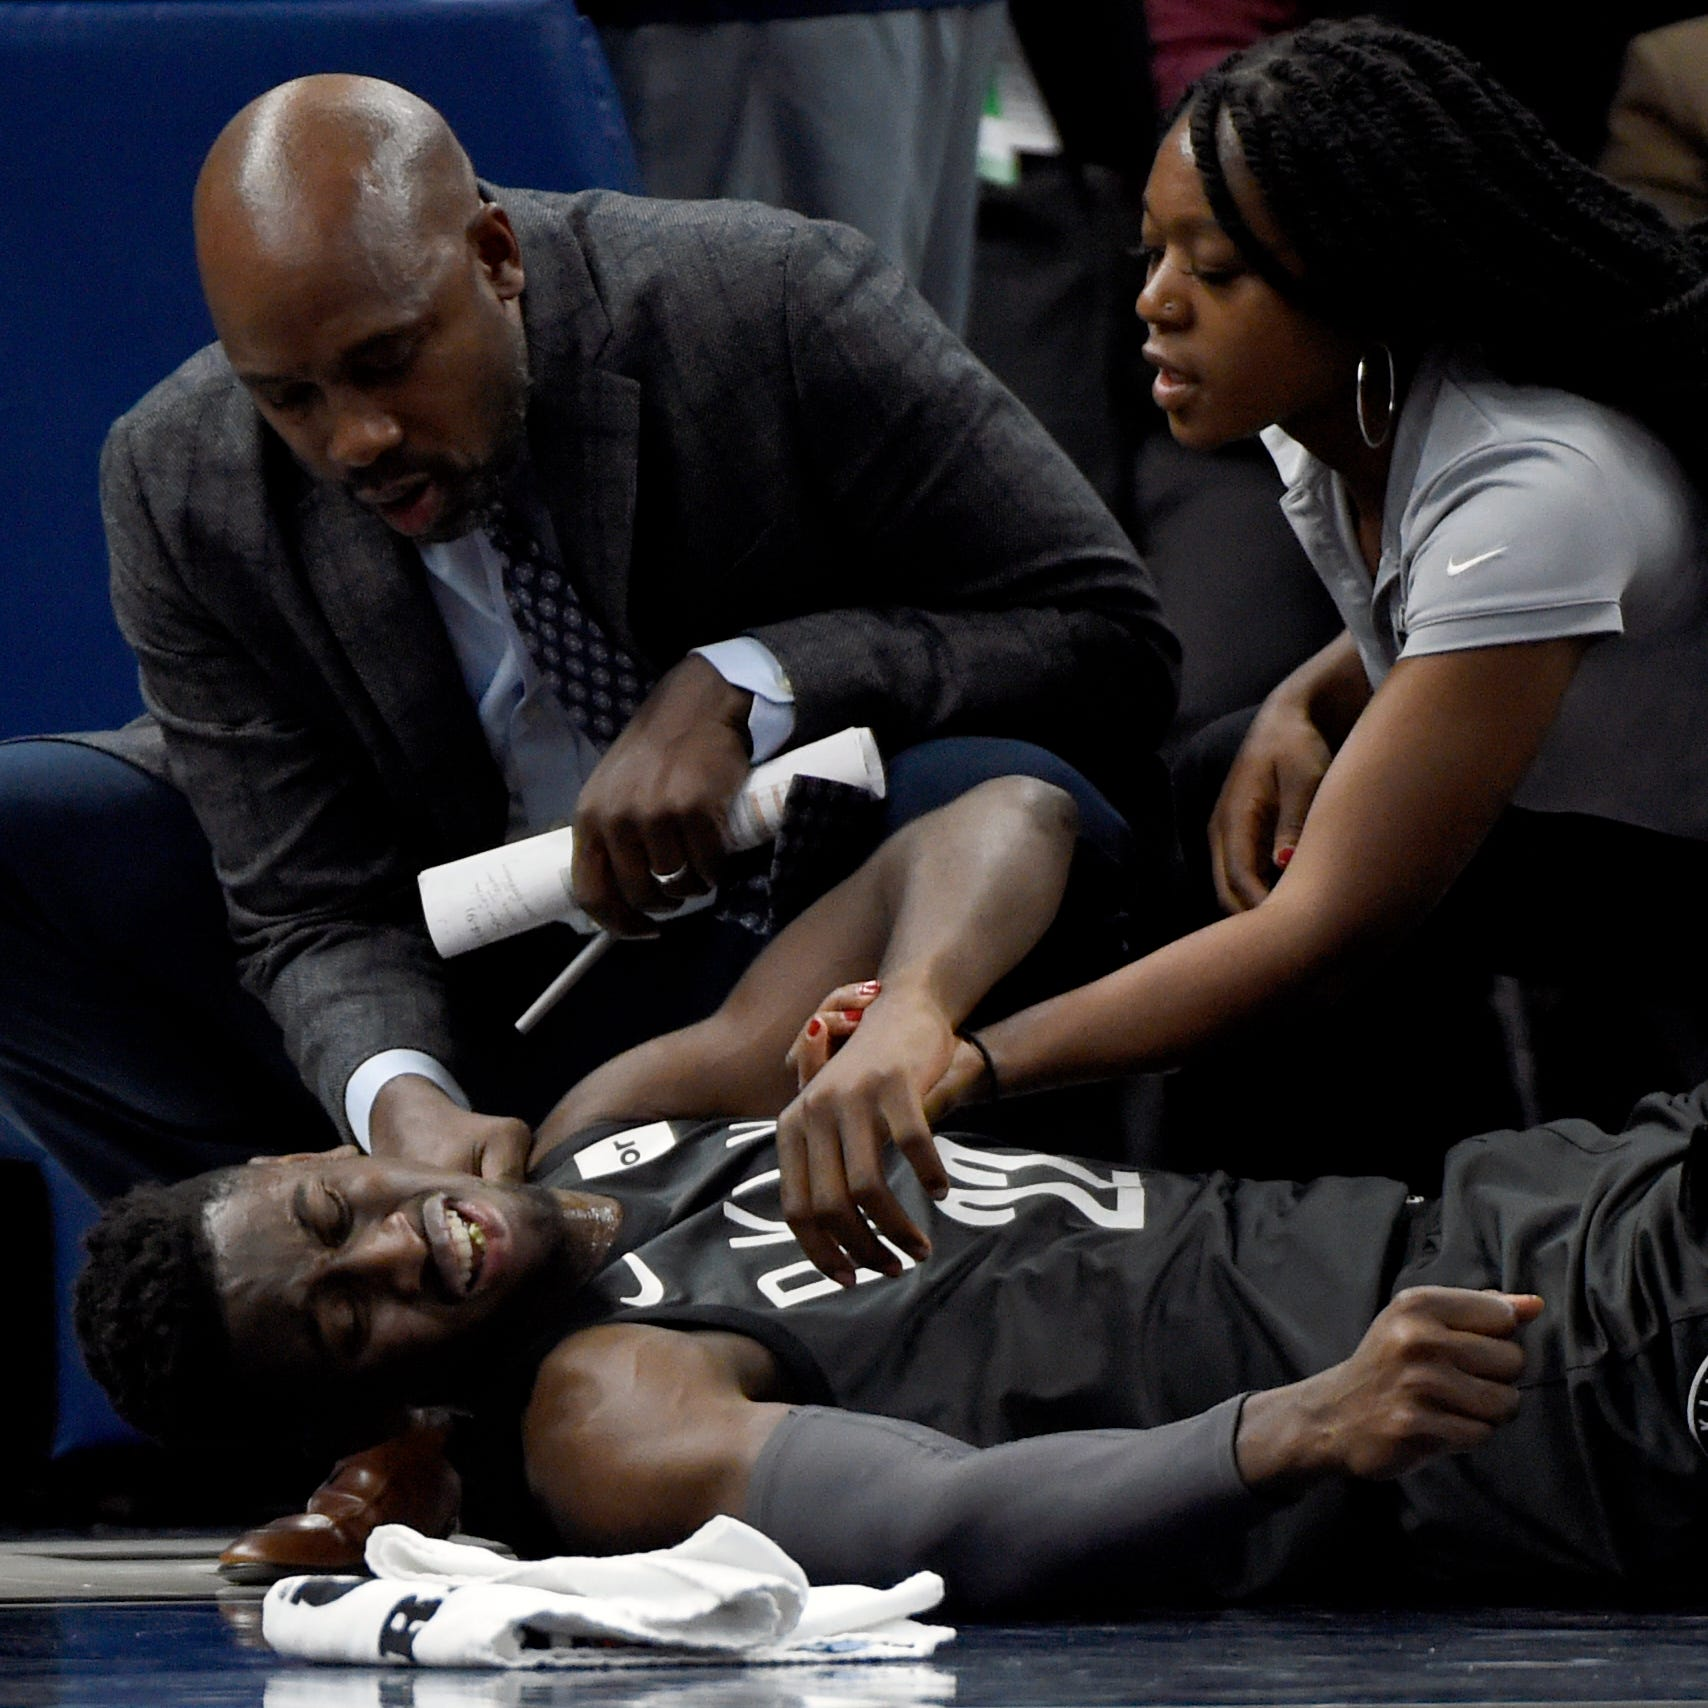 Former Michigan star Caris LeVert sustains gruesome injury